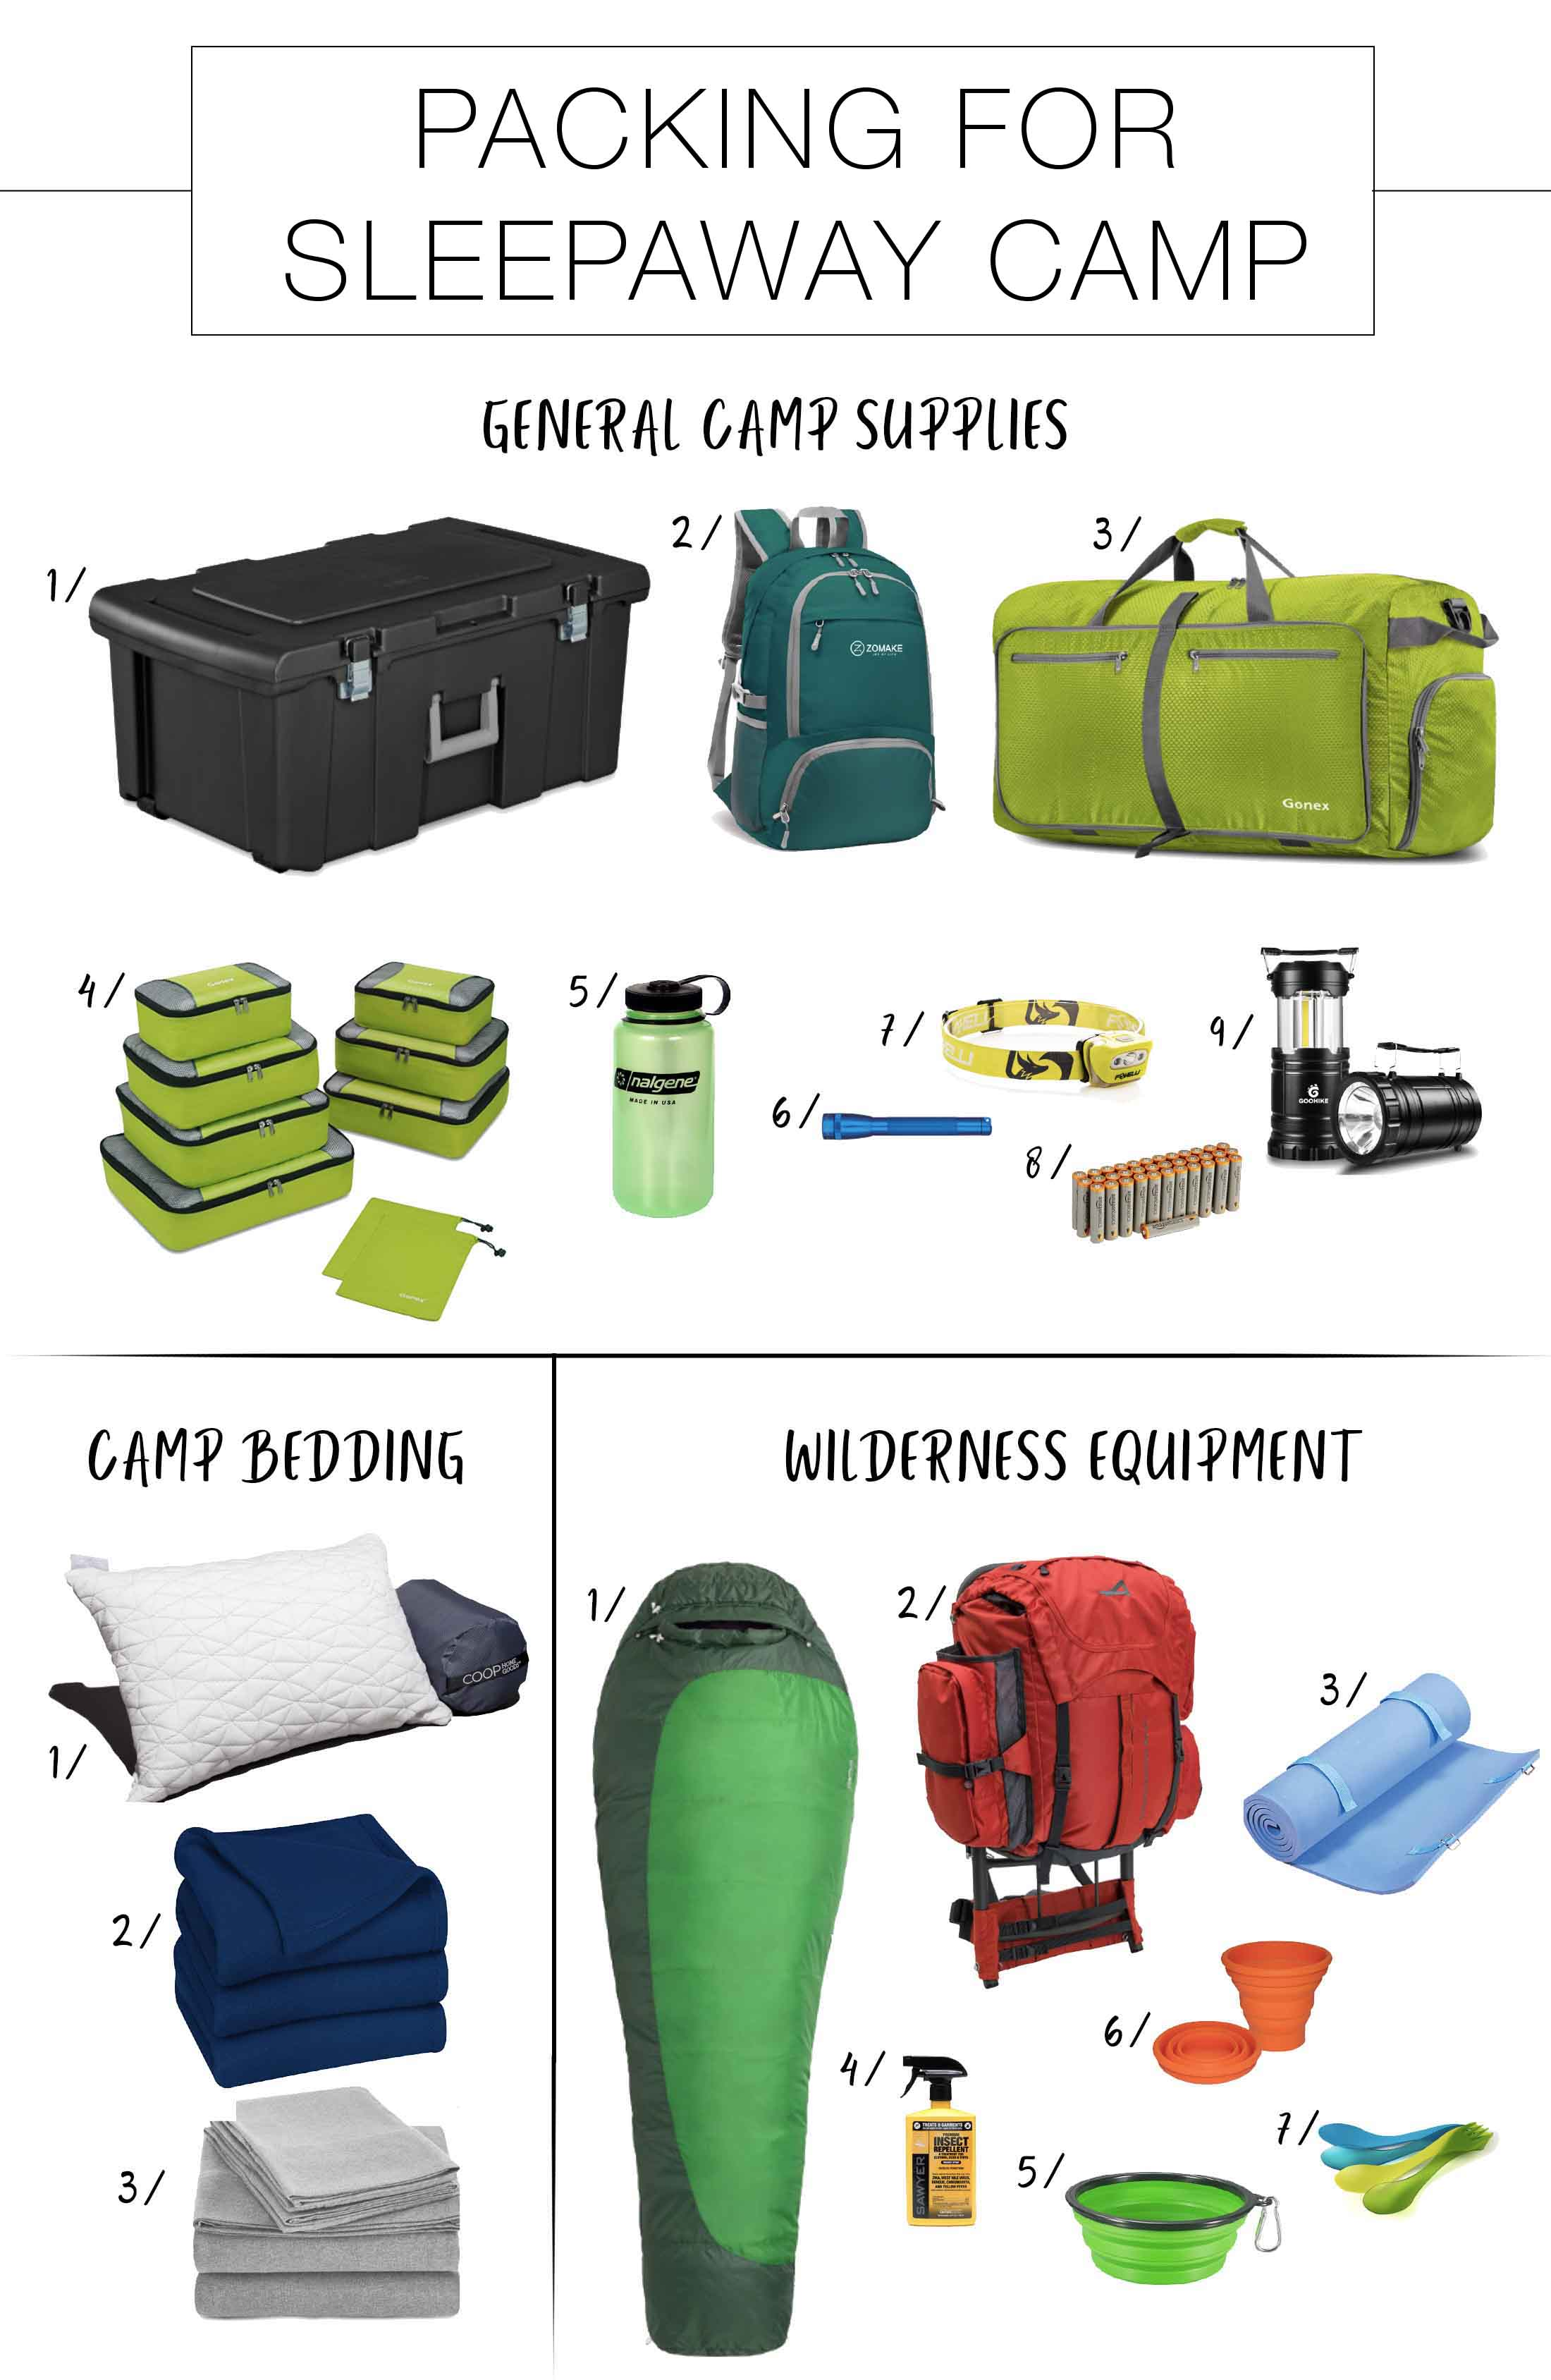 Mamas — got your kid's camper packing list ready? It's summer sleepaway camp time & we're on it. Our shoppable summer camp essentials are right here.